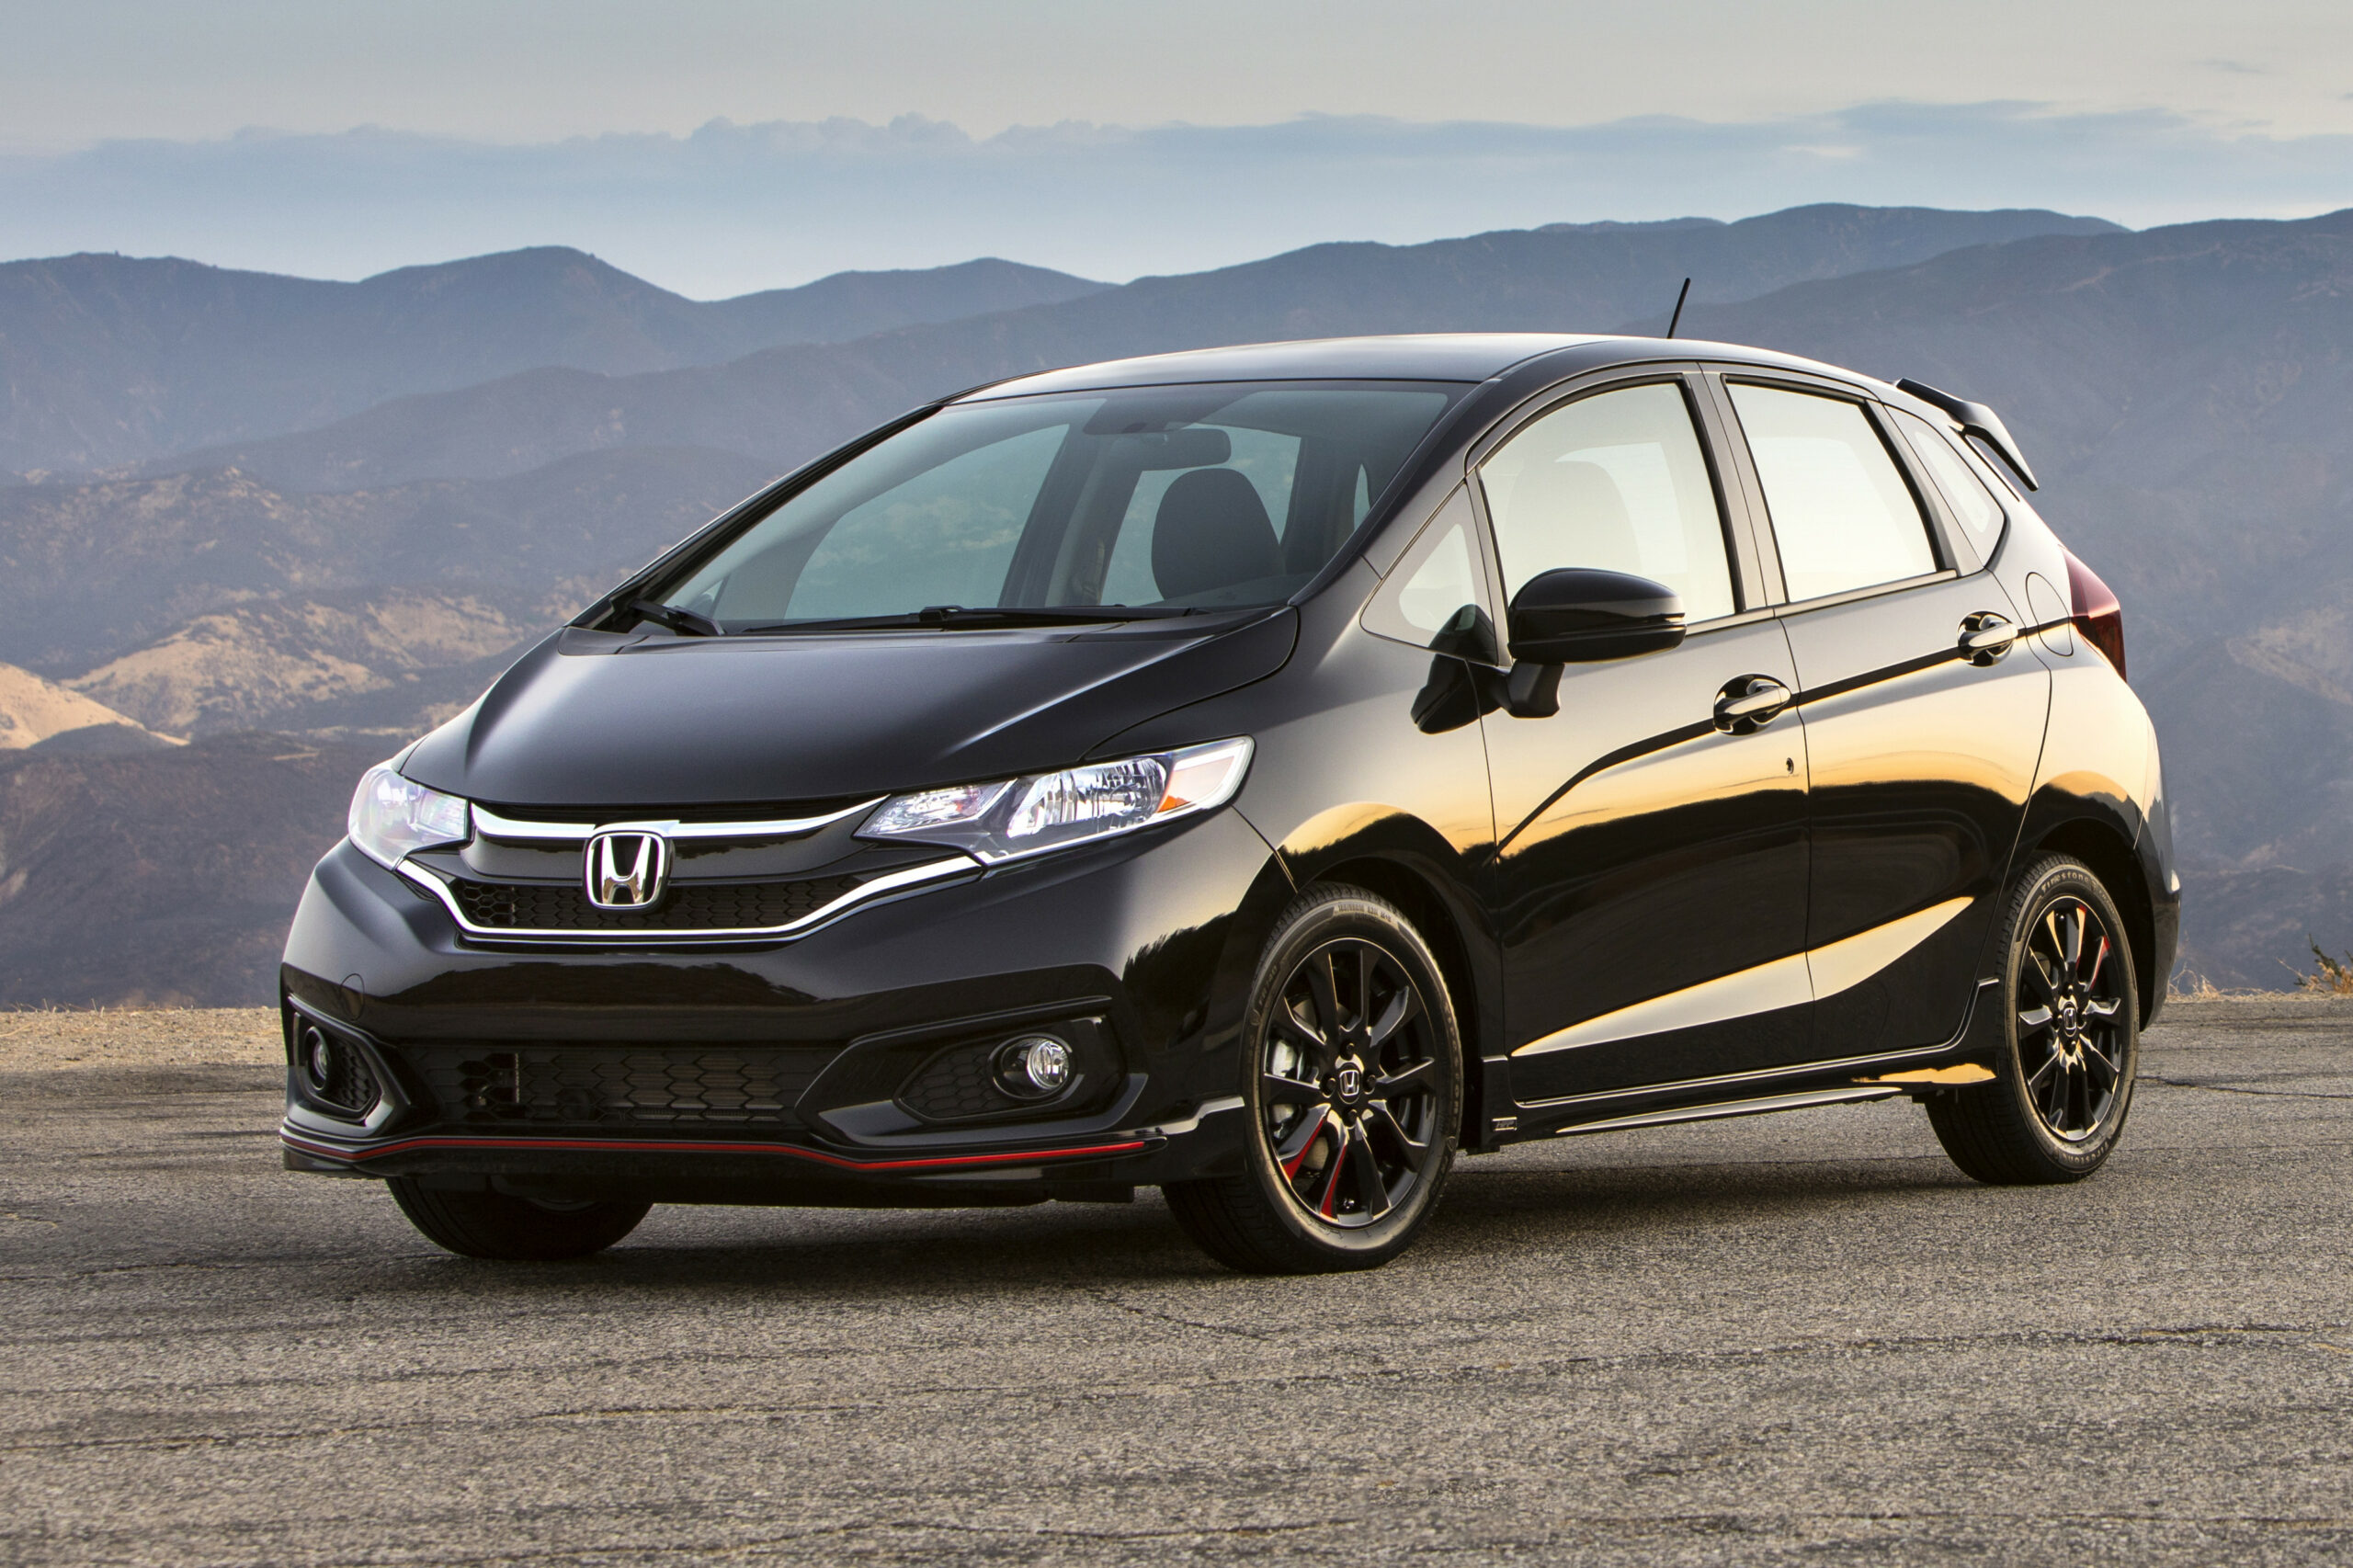 Honda Fit: Which Should You Buy, 6 or 6? | News | Cars